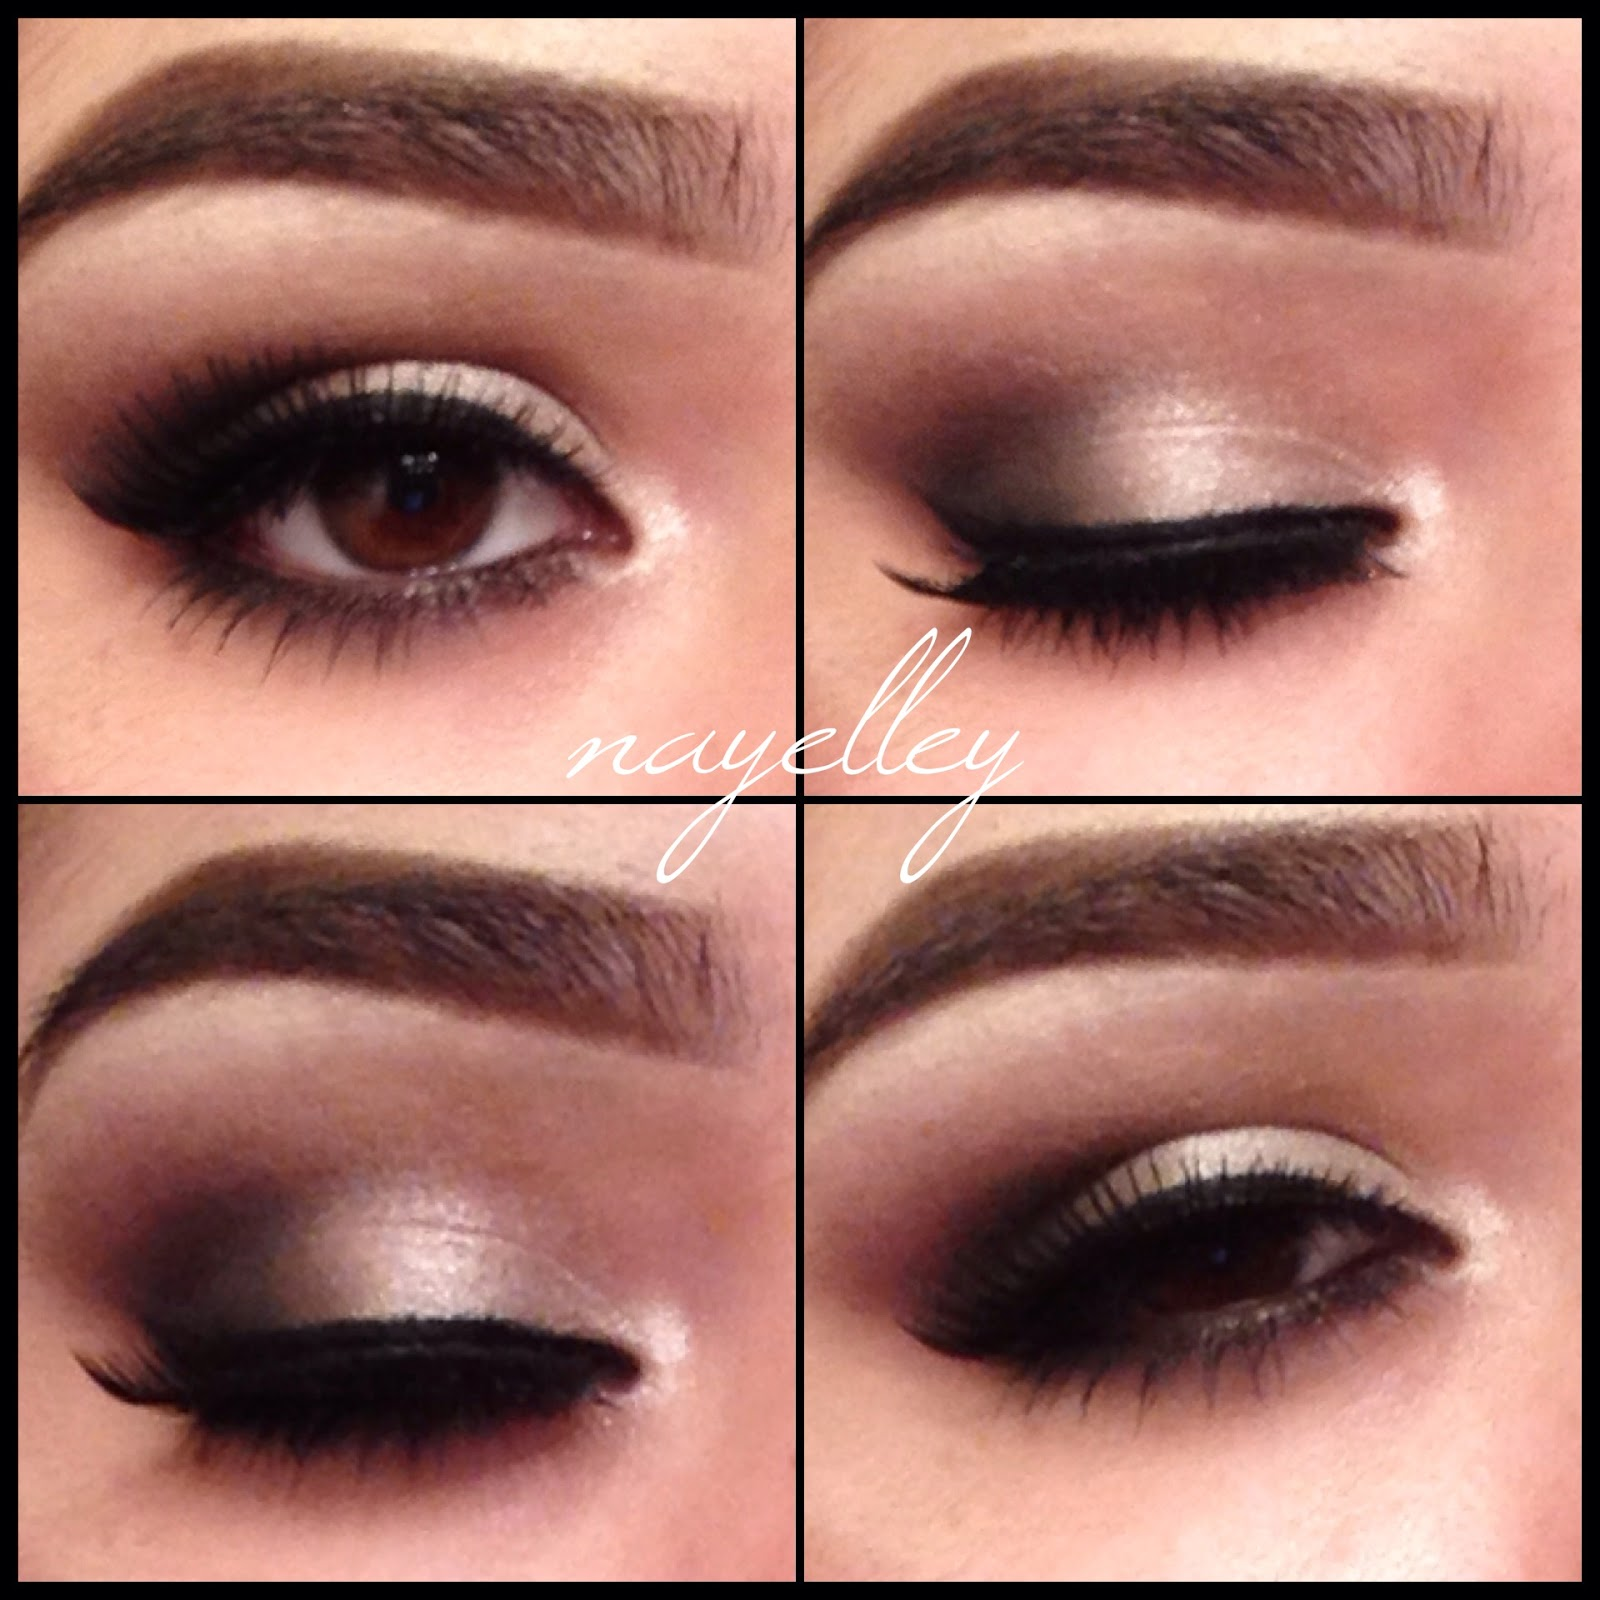 Makeup By Nayelley Prom Eye Makeup 2014